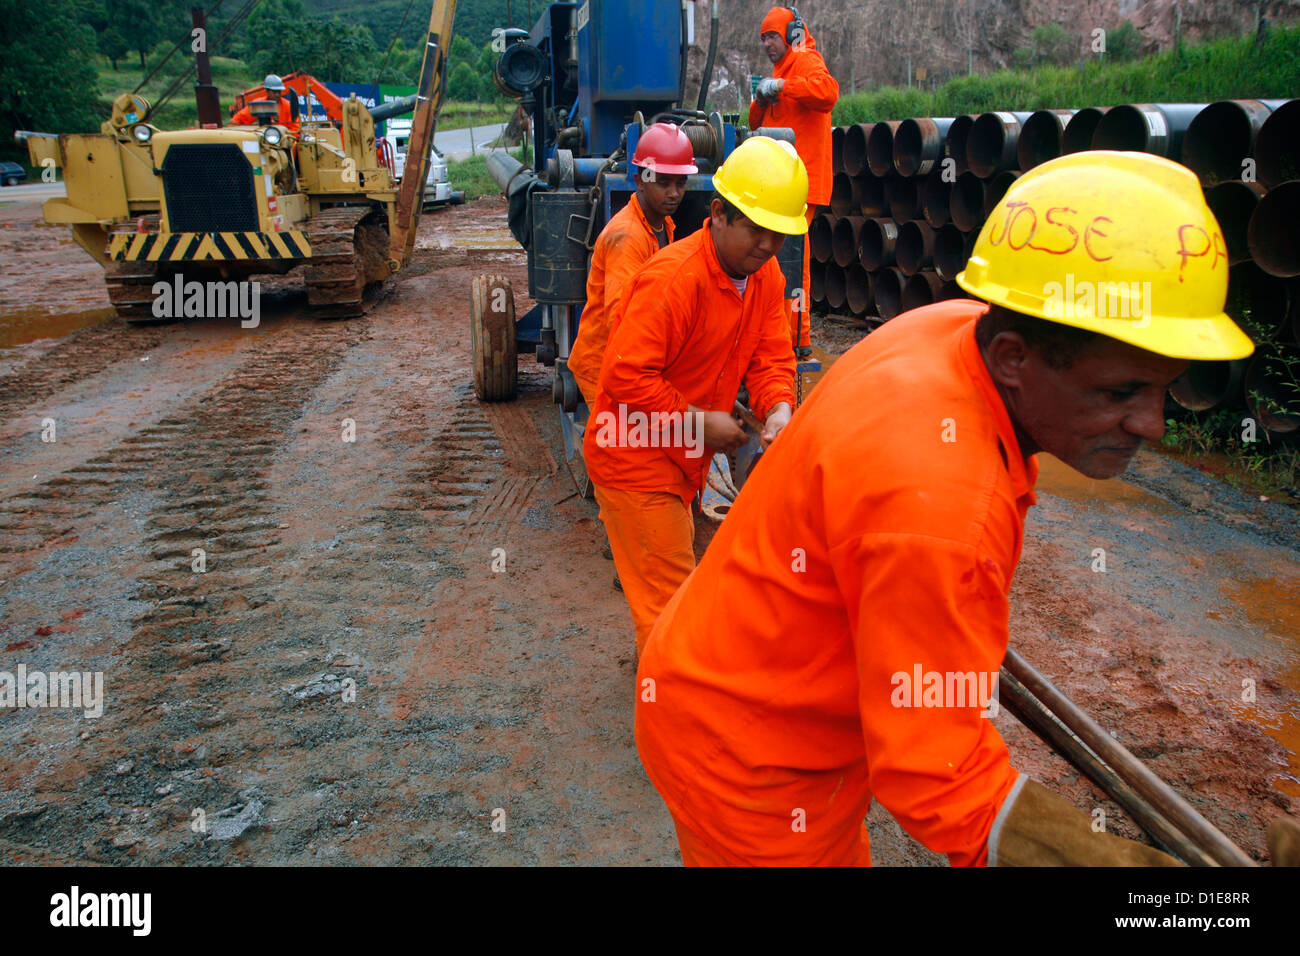 Workers putting pipes for natural gas near Congonhas, Minas Gerais, Brazil, South America - Stock Image